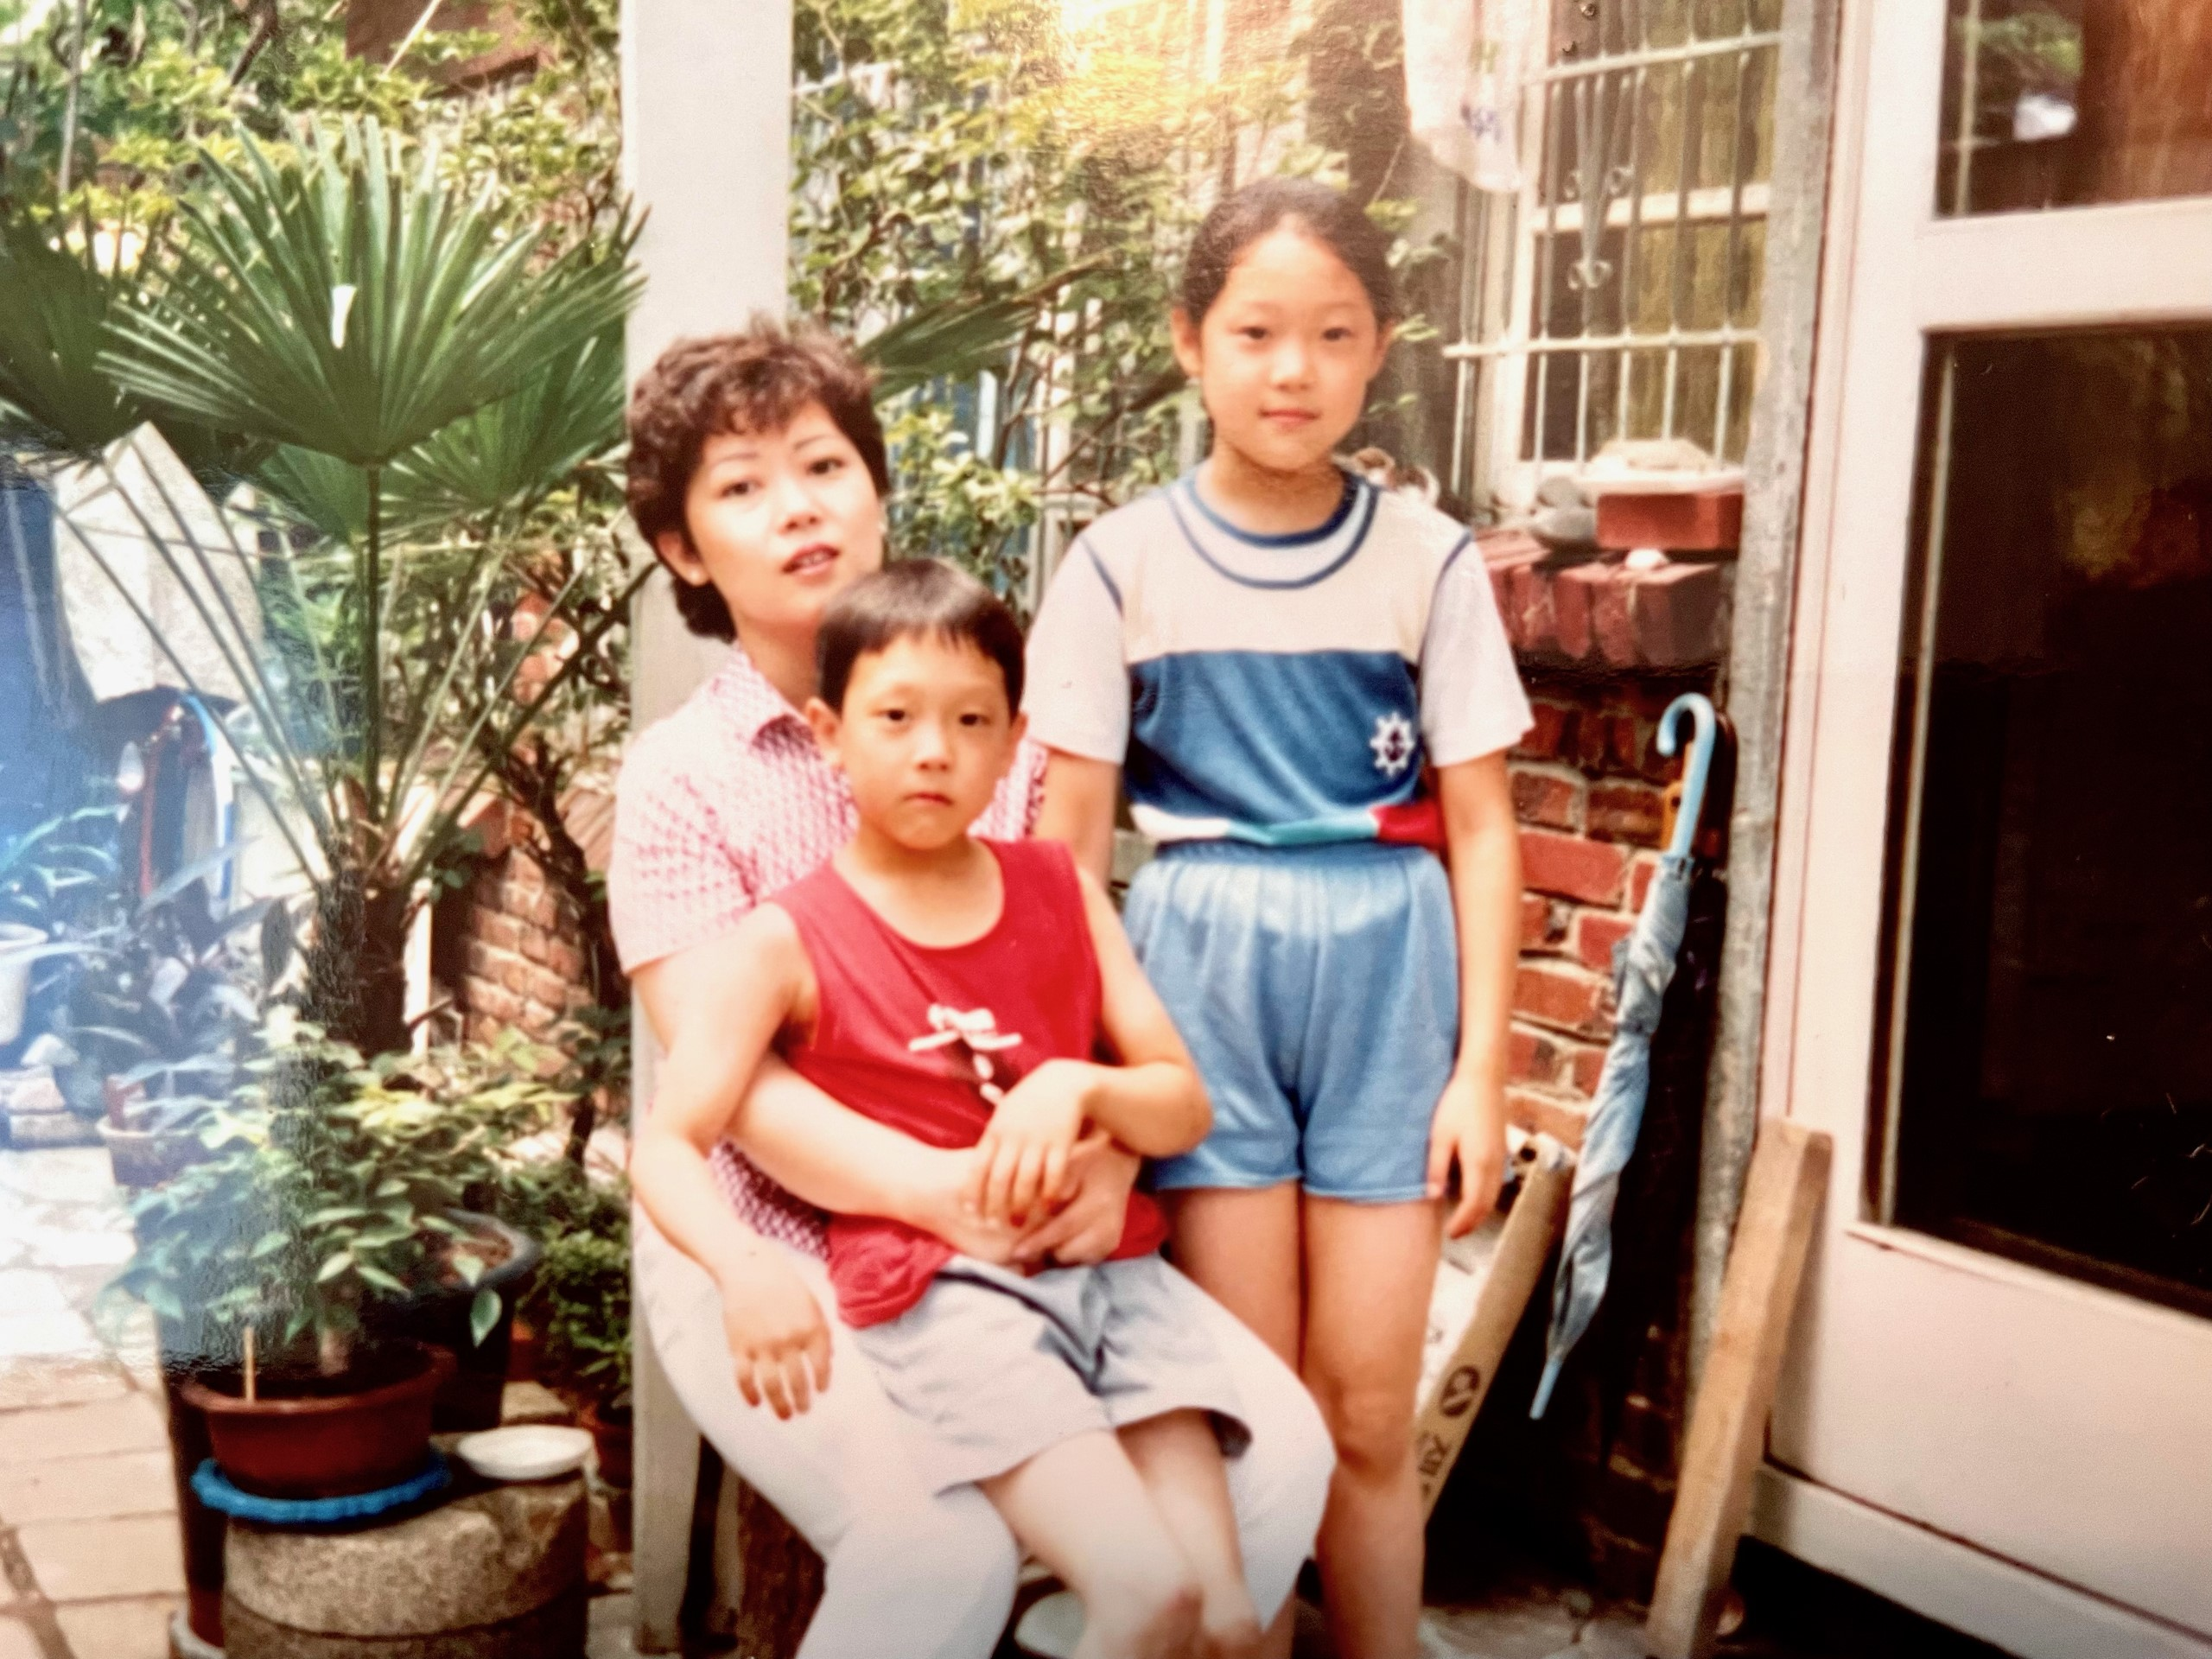 Young boy and girl with their mother, sitting on a chair